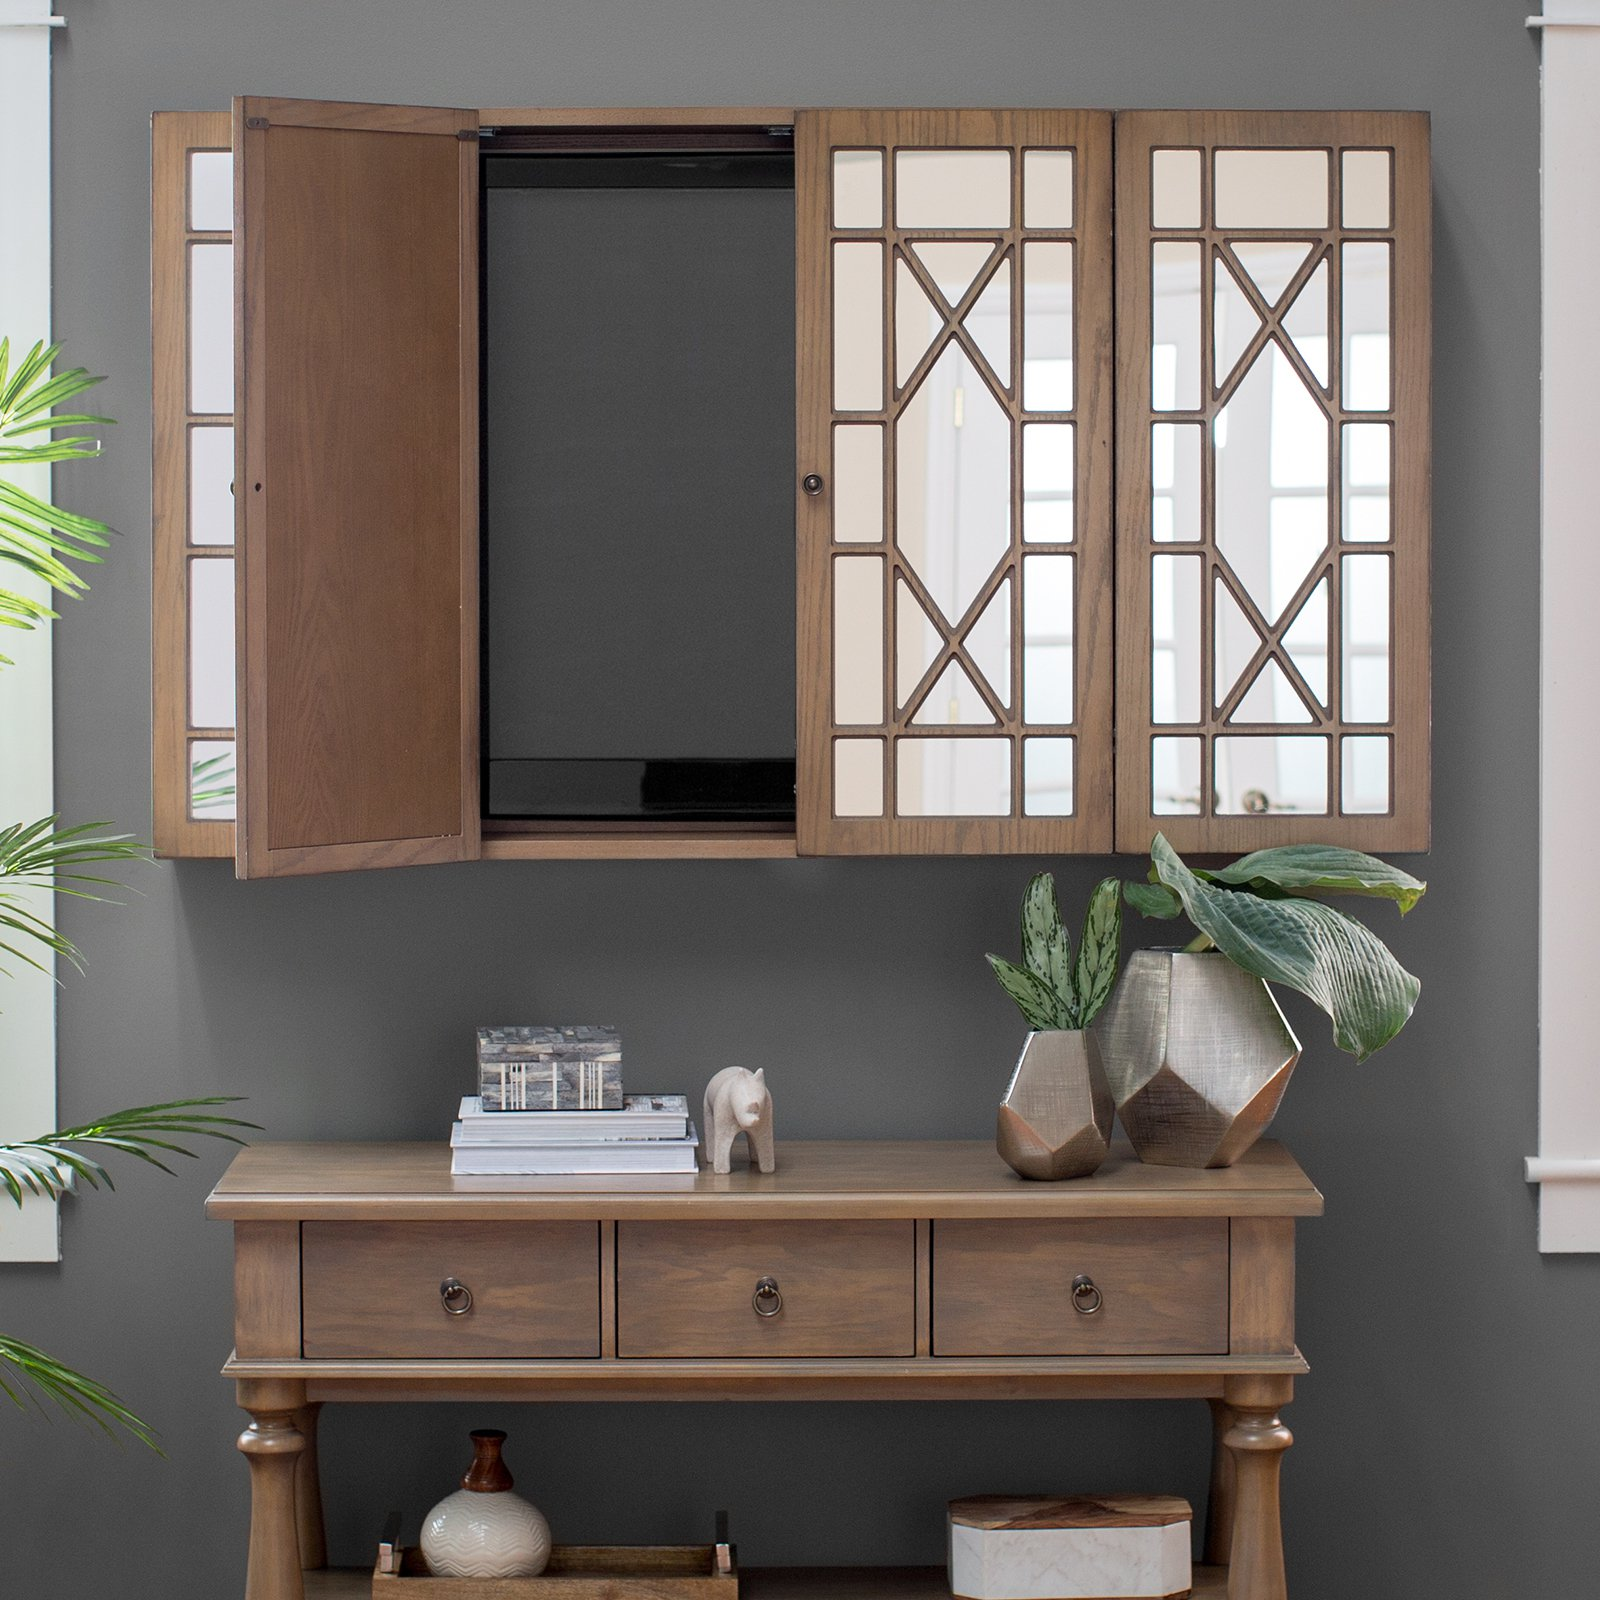 Tv Wall Cabinets With Doors Image Cabinets And Shower Mandra